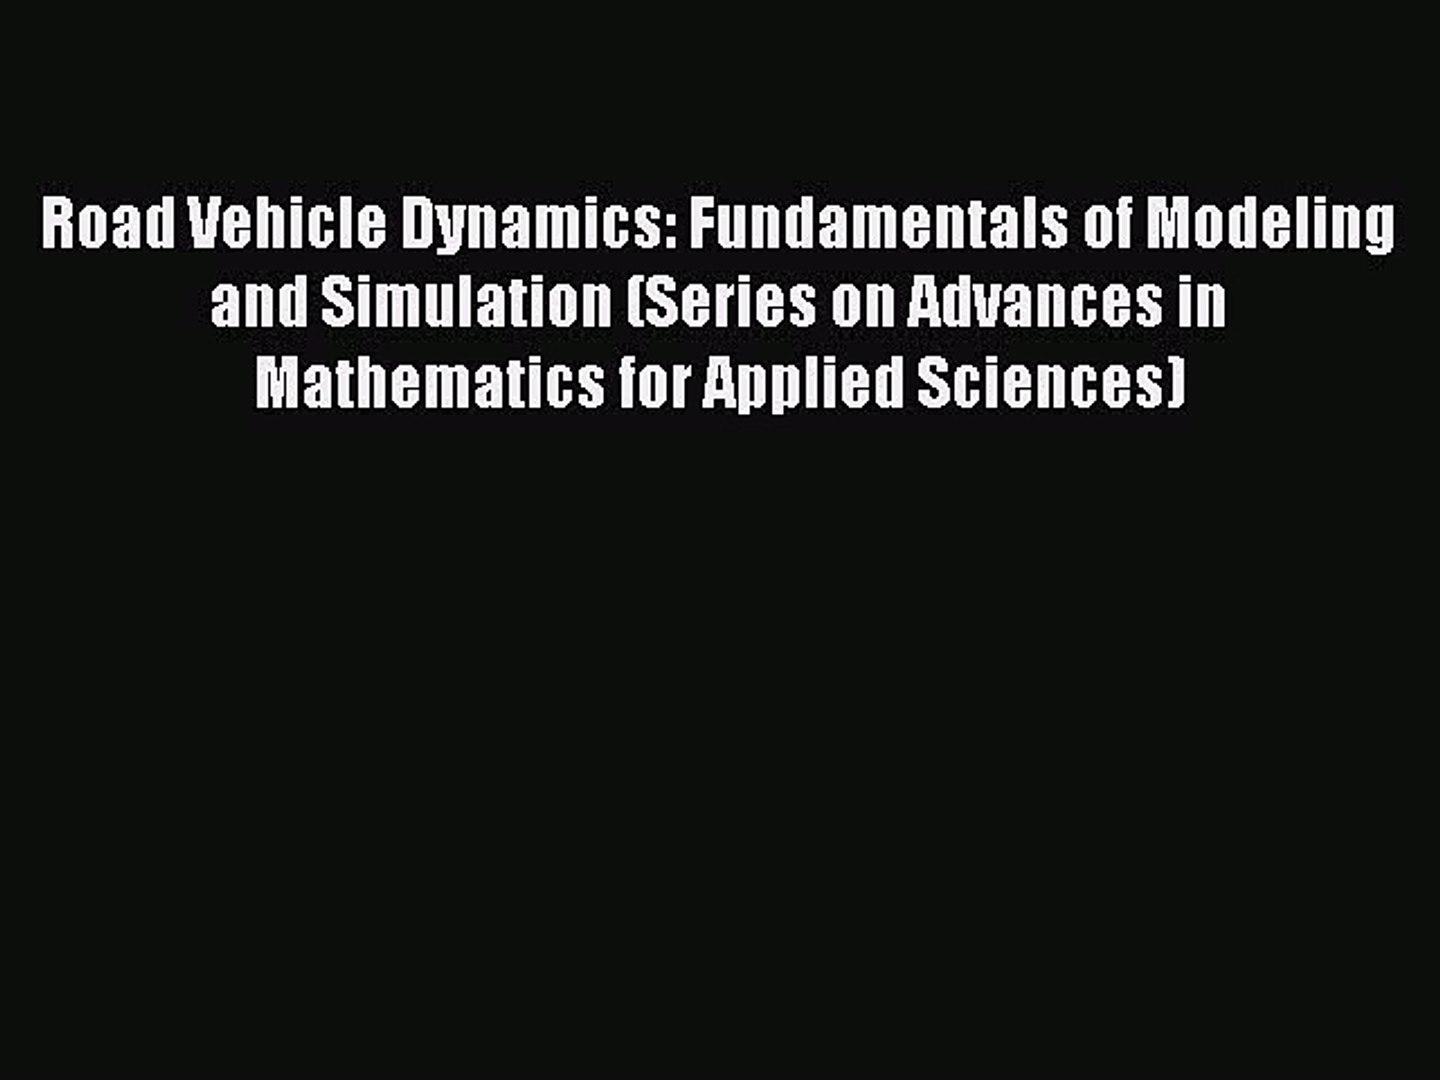 Download Road Vehicle Dynamics: Fundamentals of Modeling and Simulation  (Series on Advances